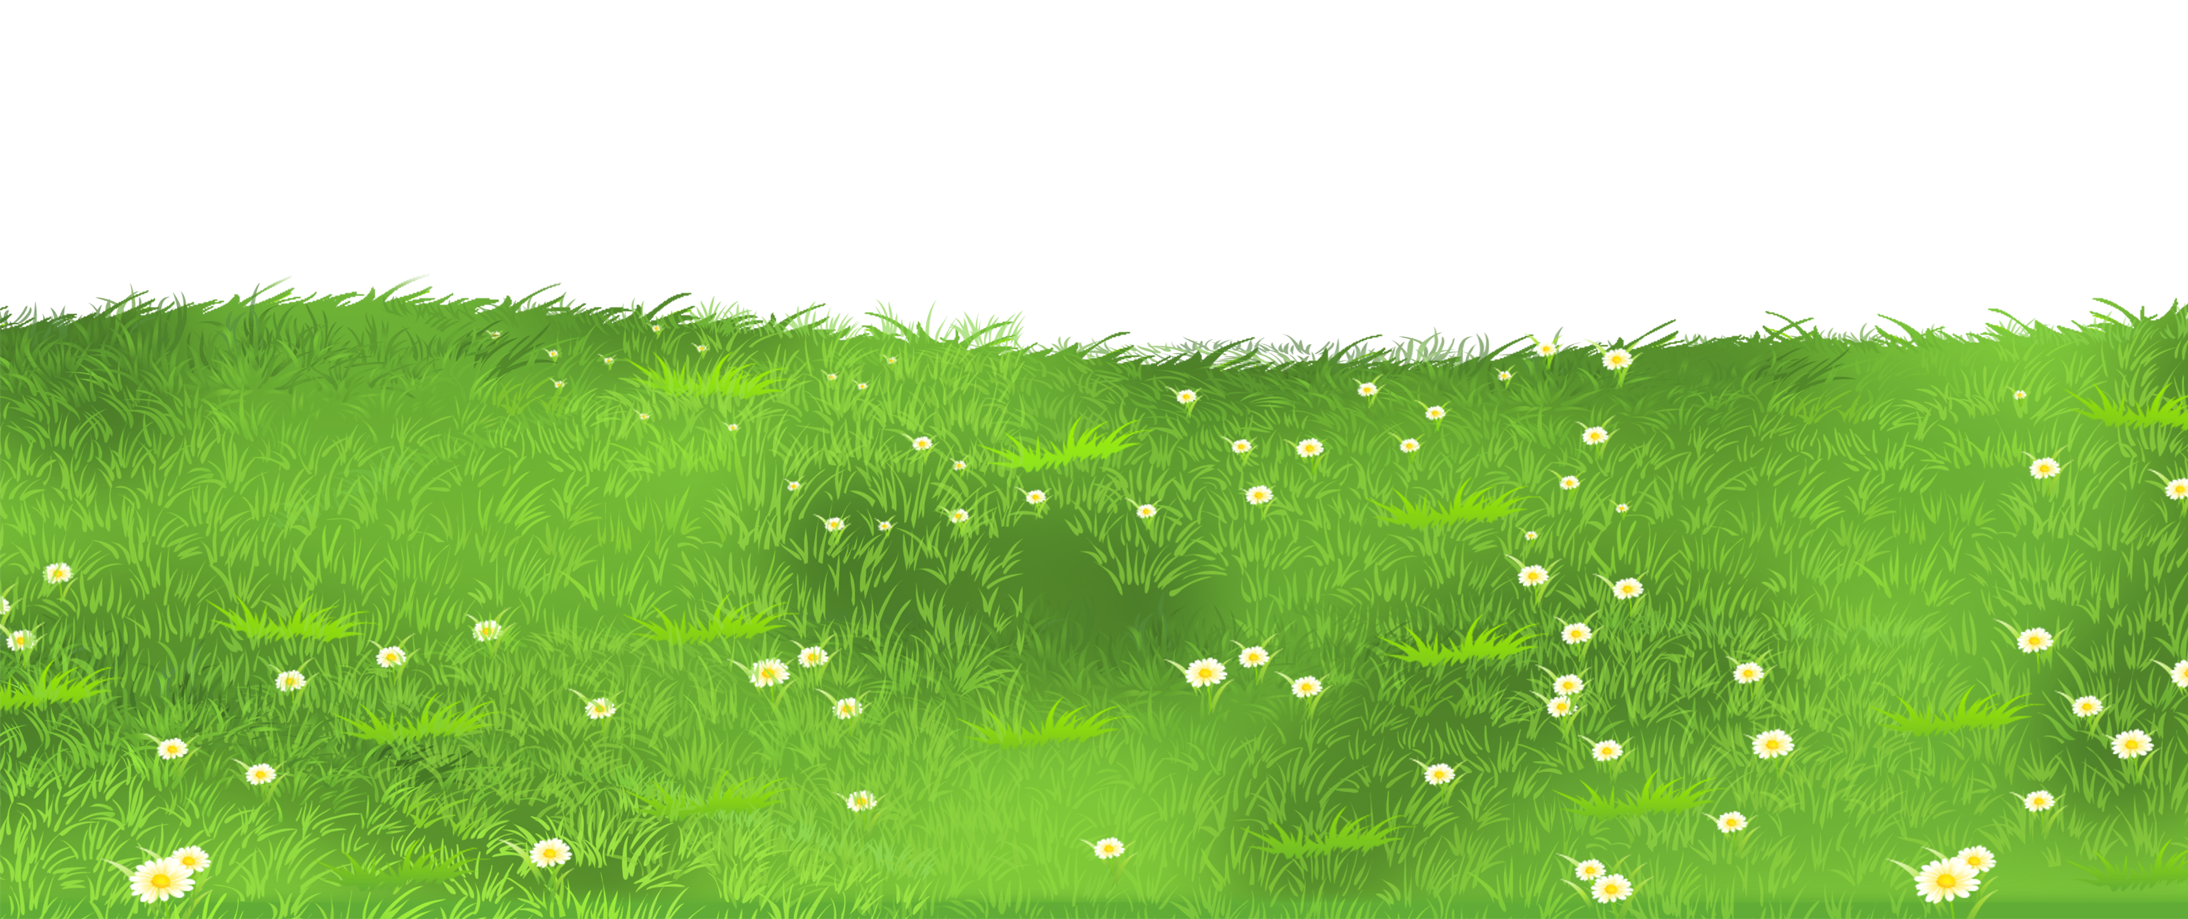 image download Valley clipart grassland. Green grass image diversos